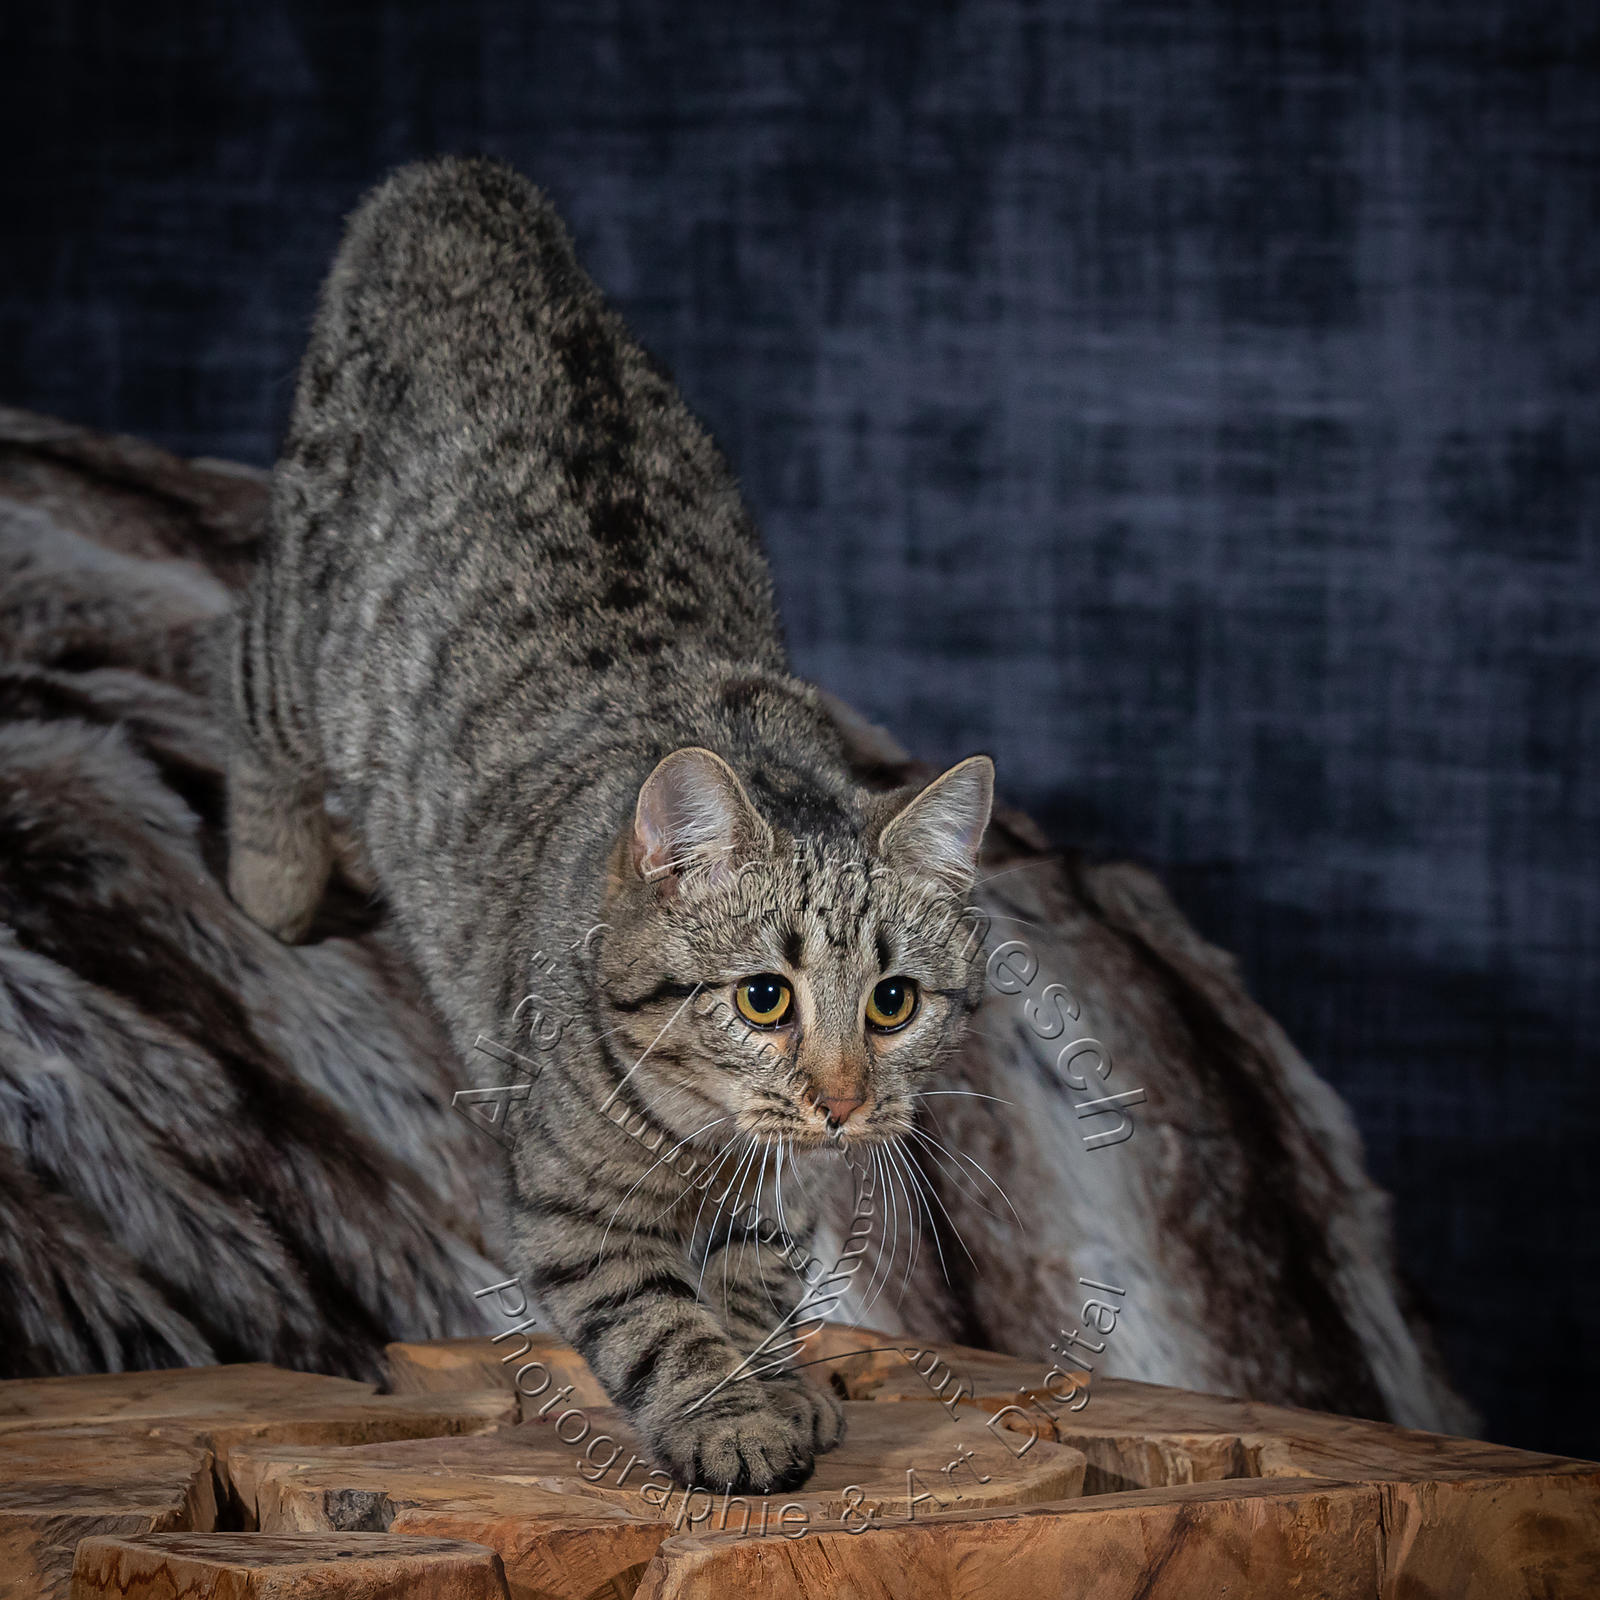 Photographie-Alain-Thimmesch-Chat-1091